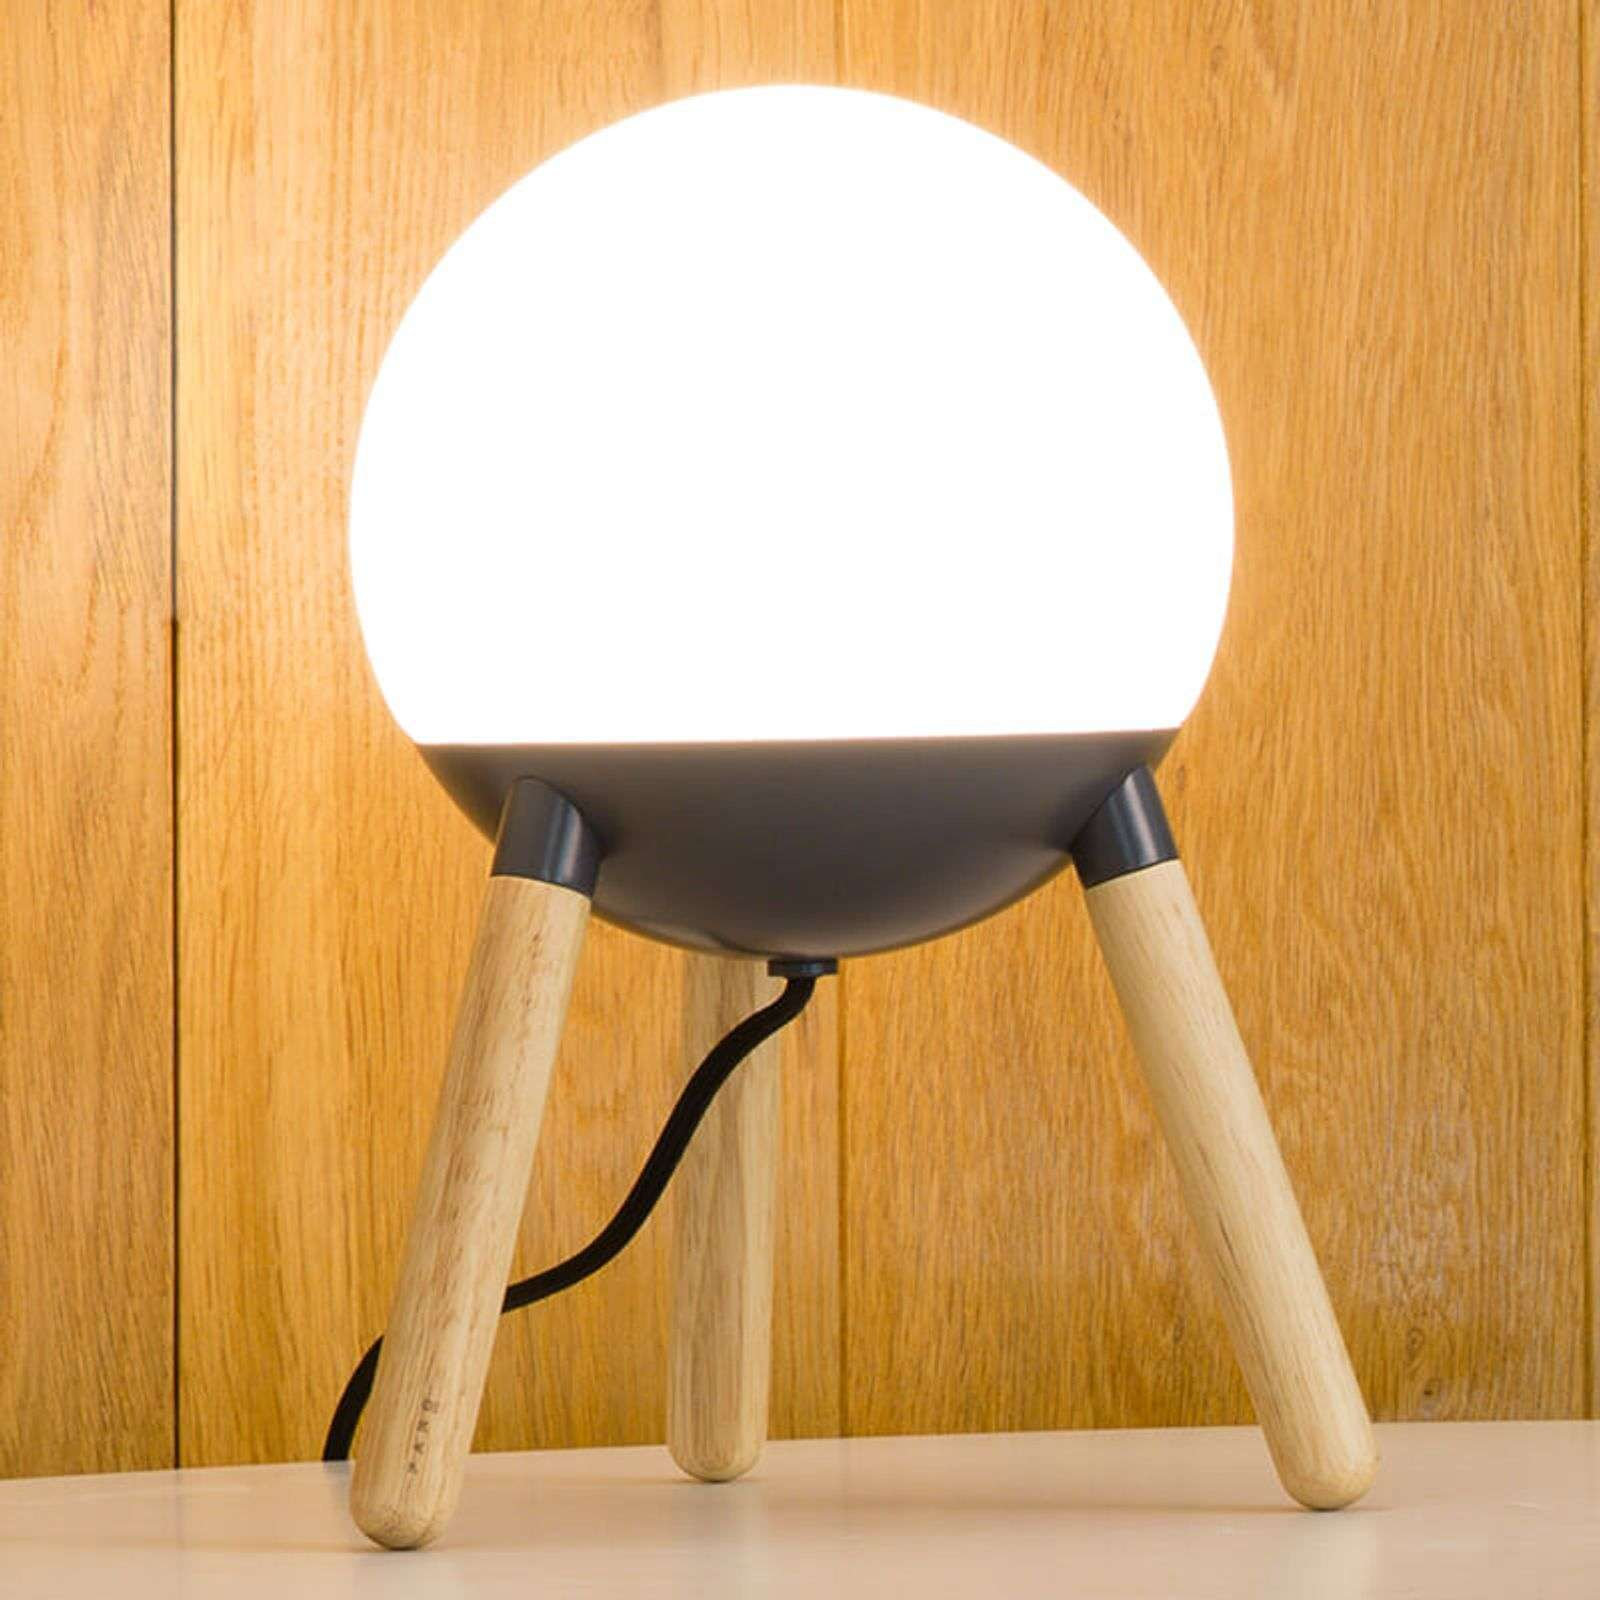 Lampe à poser Mine avec support trépied